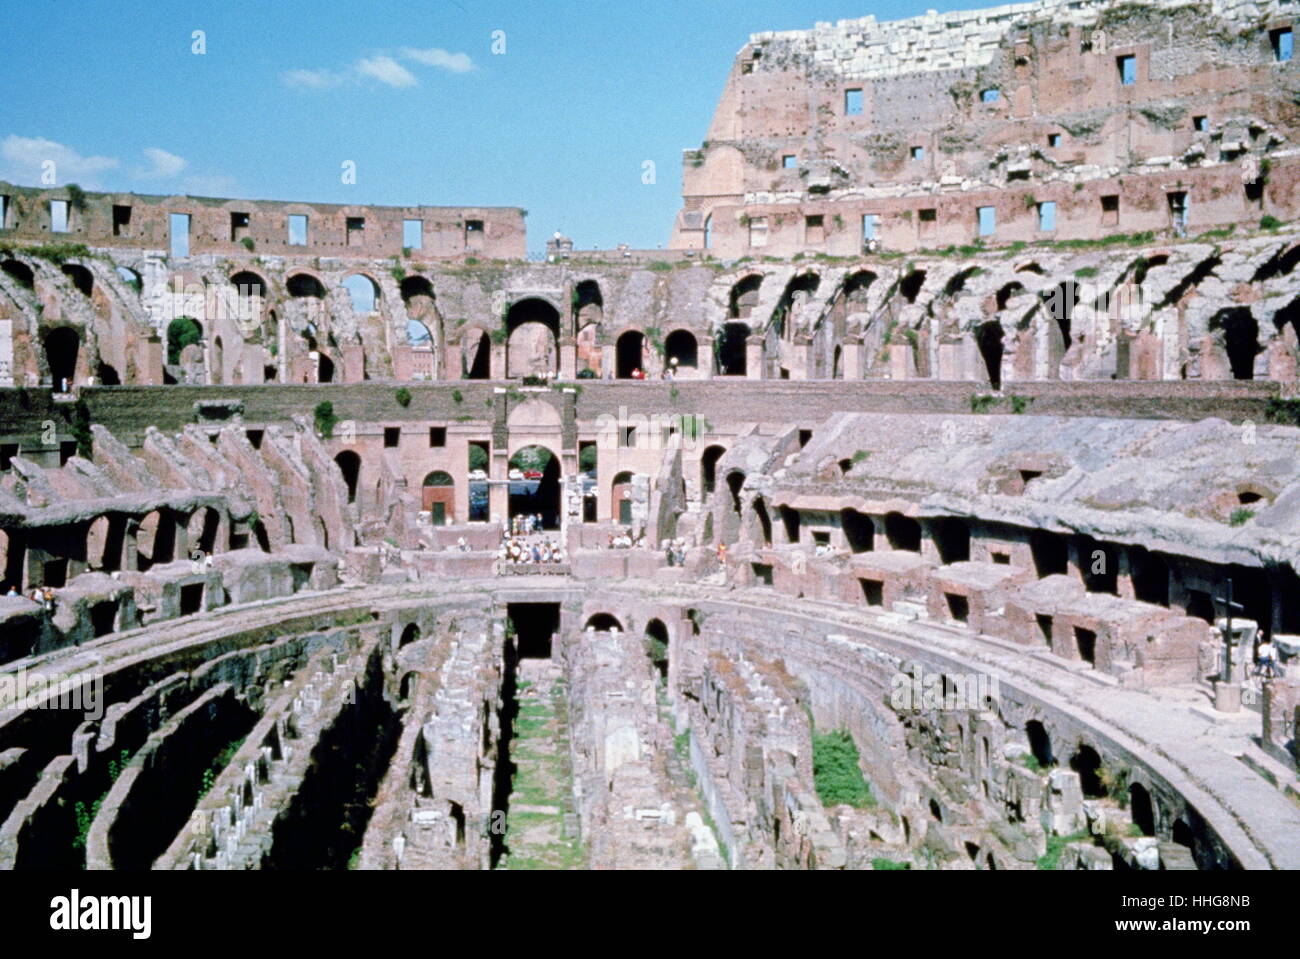 The Coliseum or Coliseum is an oval amphitheatre in the centre of the city of Rome - Stock Image